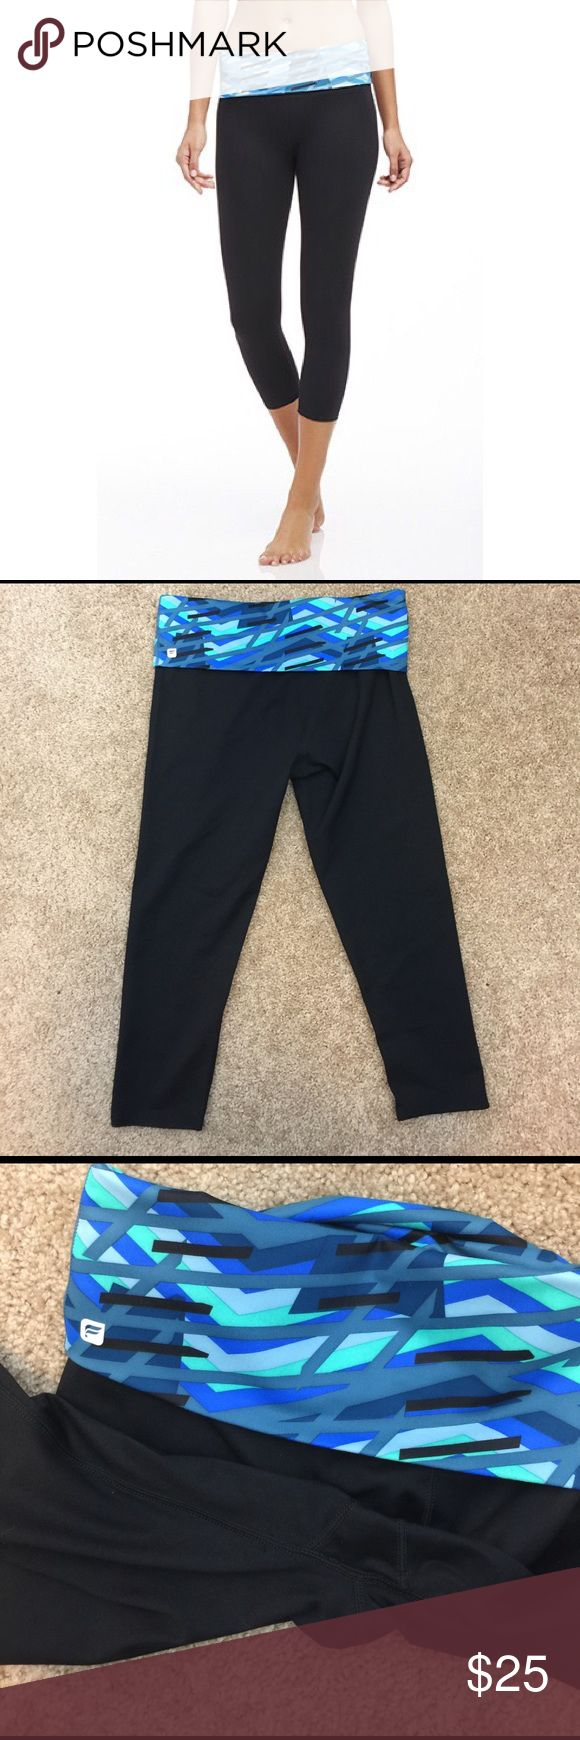 NWOT Fabletics Fold Over Crop Leggings These Crops are new without tags! Only tried on once. The size tag is torn out though. They are size medium! No trades. Smoke and pet free home. Reasonable offers welcome! Fabletics Pants Leggings